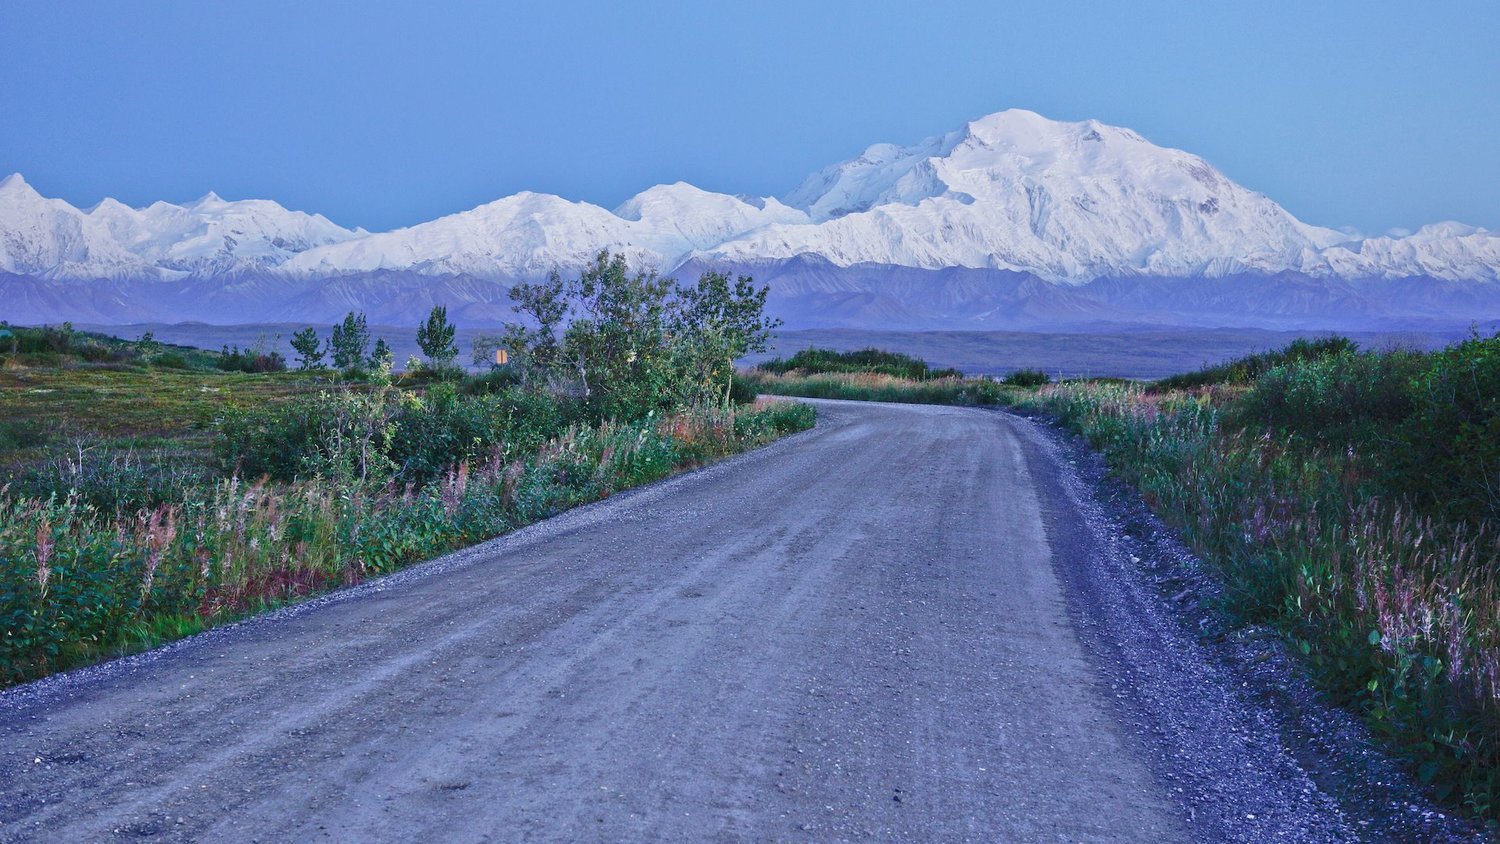 The most spiritual moment I have ever had on a bike, and possibly in my life: bike touring Alaska, late at night in fall, alone on the Denali Park Road above Wonder Lake, watching the pink rays hit Denali's northern 18,500ft rise at blue-hour. It brought me to tears, to see something so heartwarmingly beautiful and realize at that moment, I was doing exactly what my heart desires.